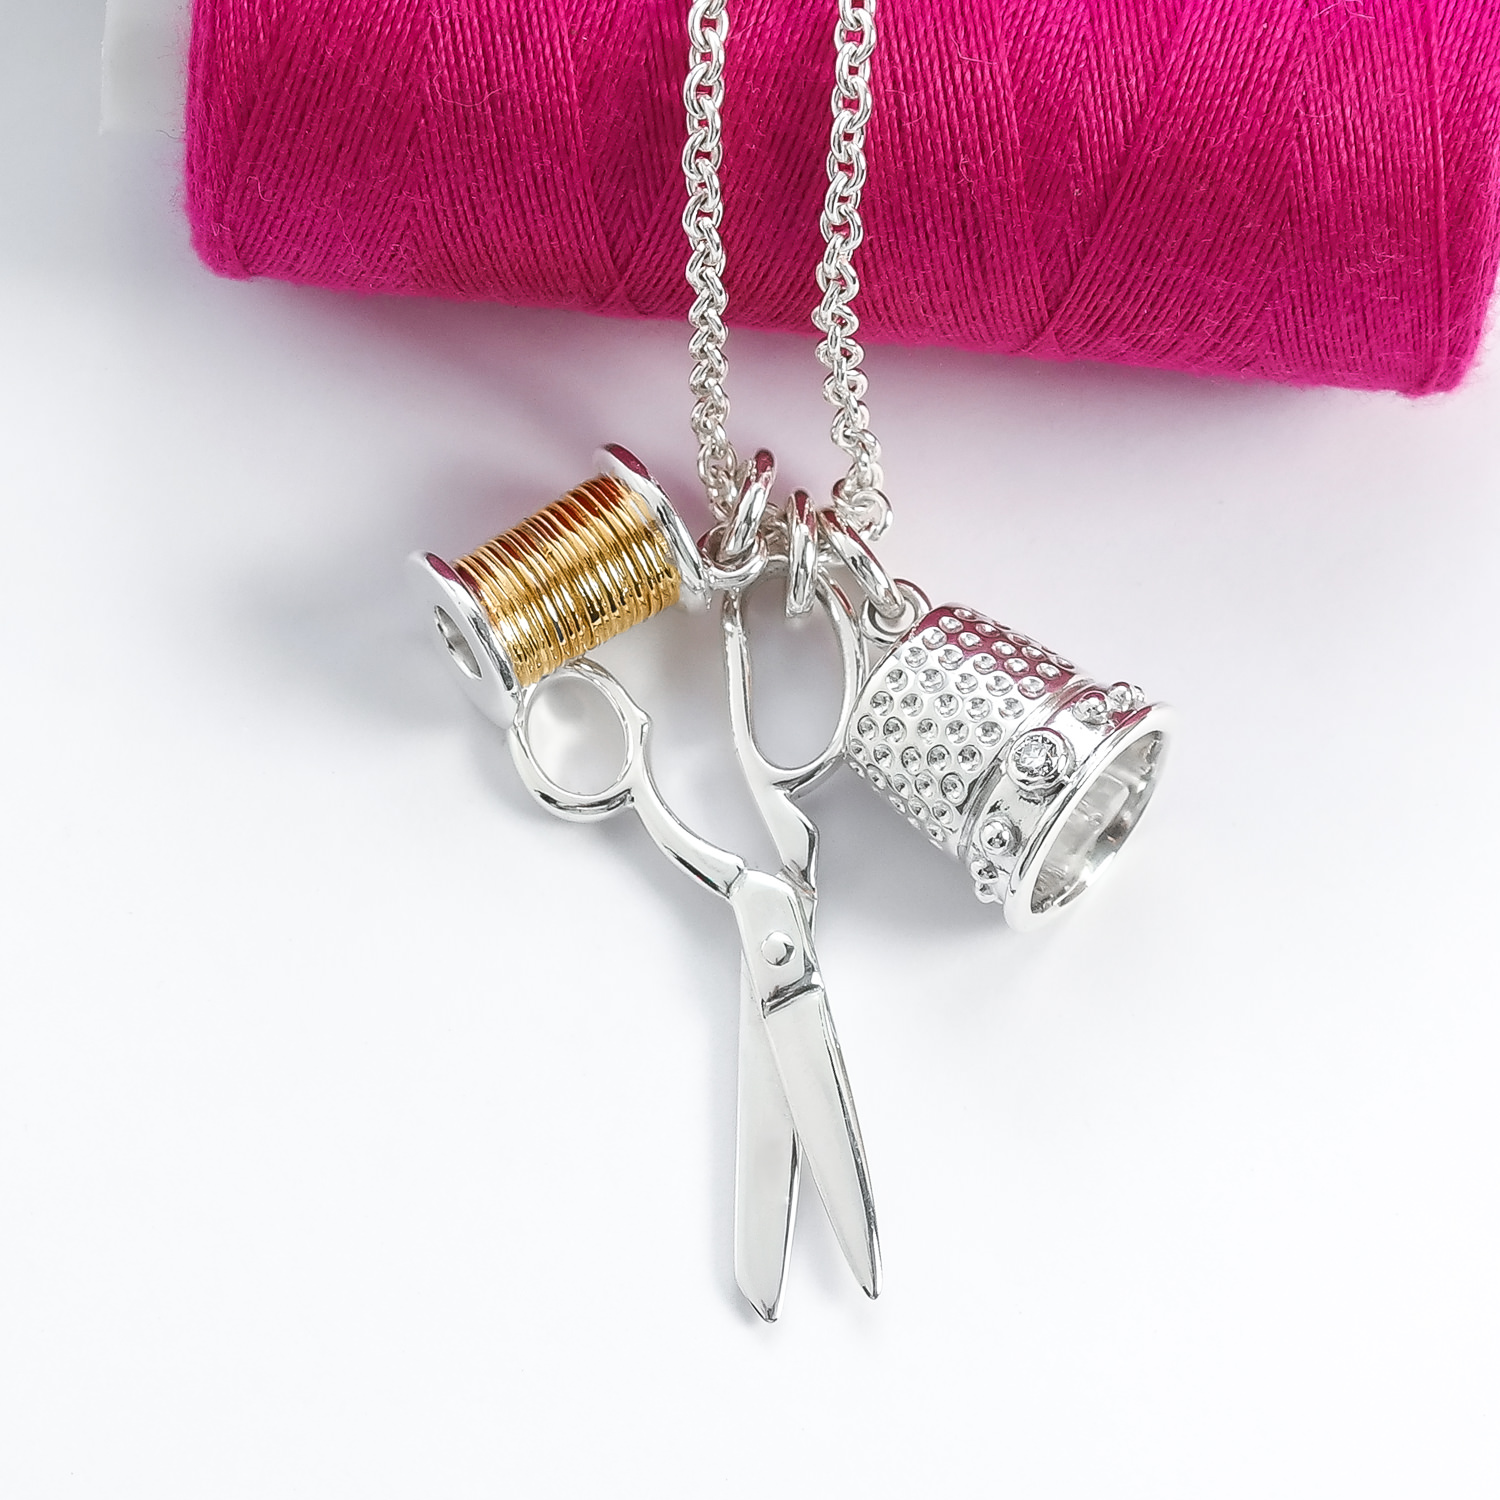 Sterling-silver-dressmakers-scissors-thread-thimble-necklace.JPG